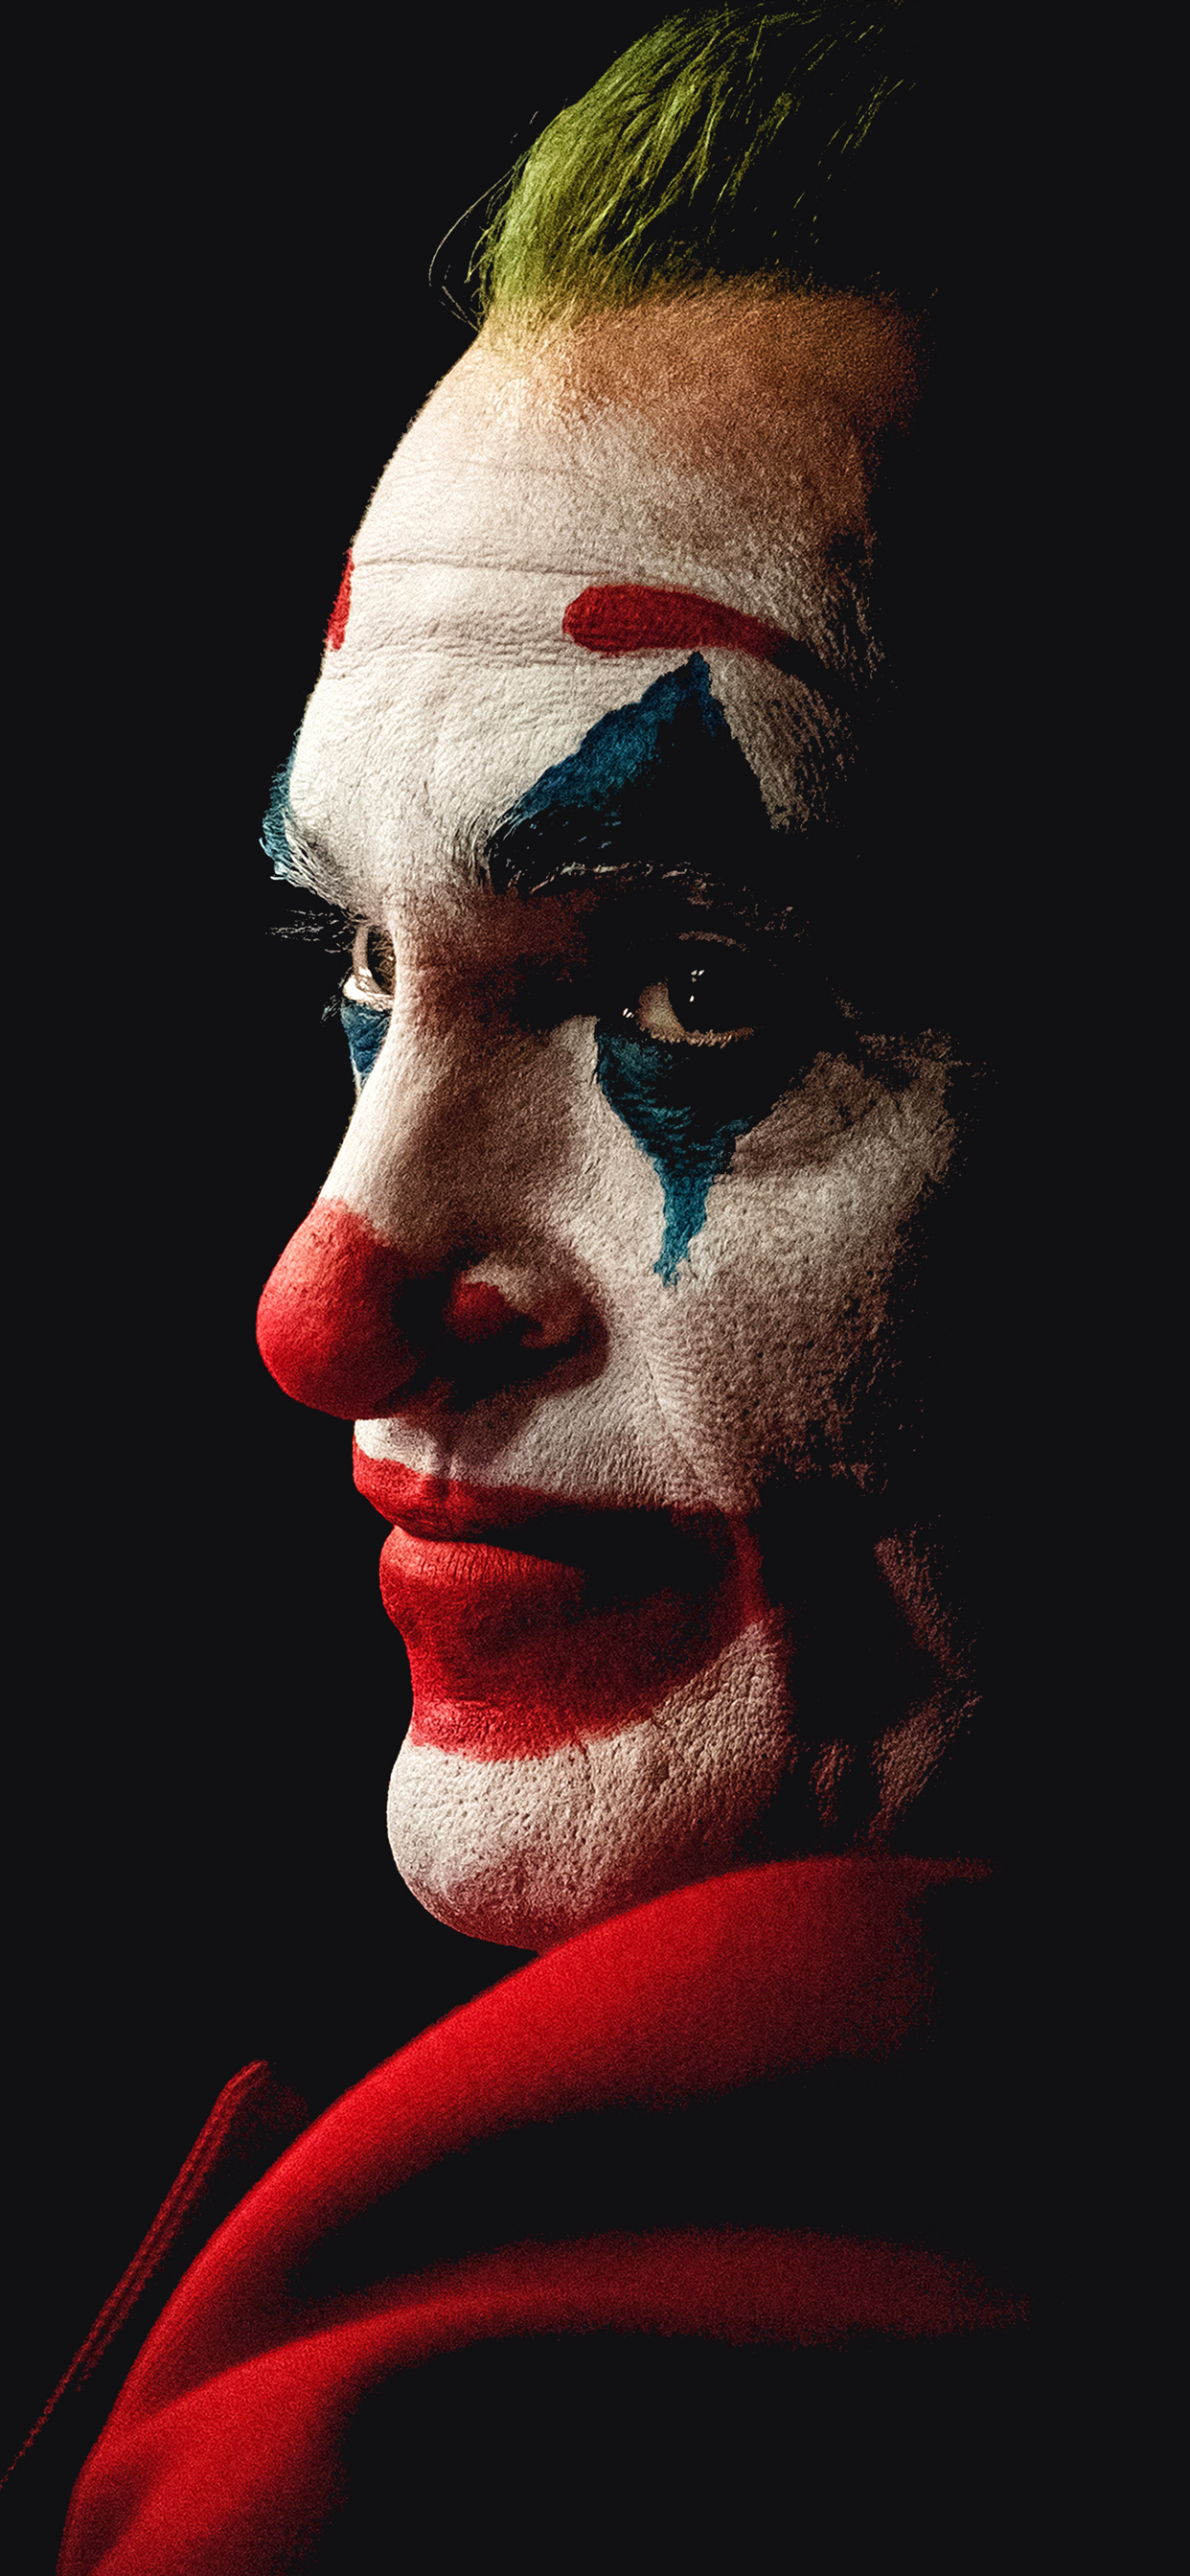 Joker Wallpaper Iphone Xs Max Joker Images Joker Wallpapers